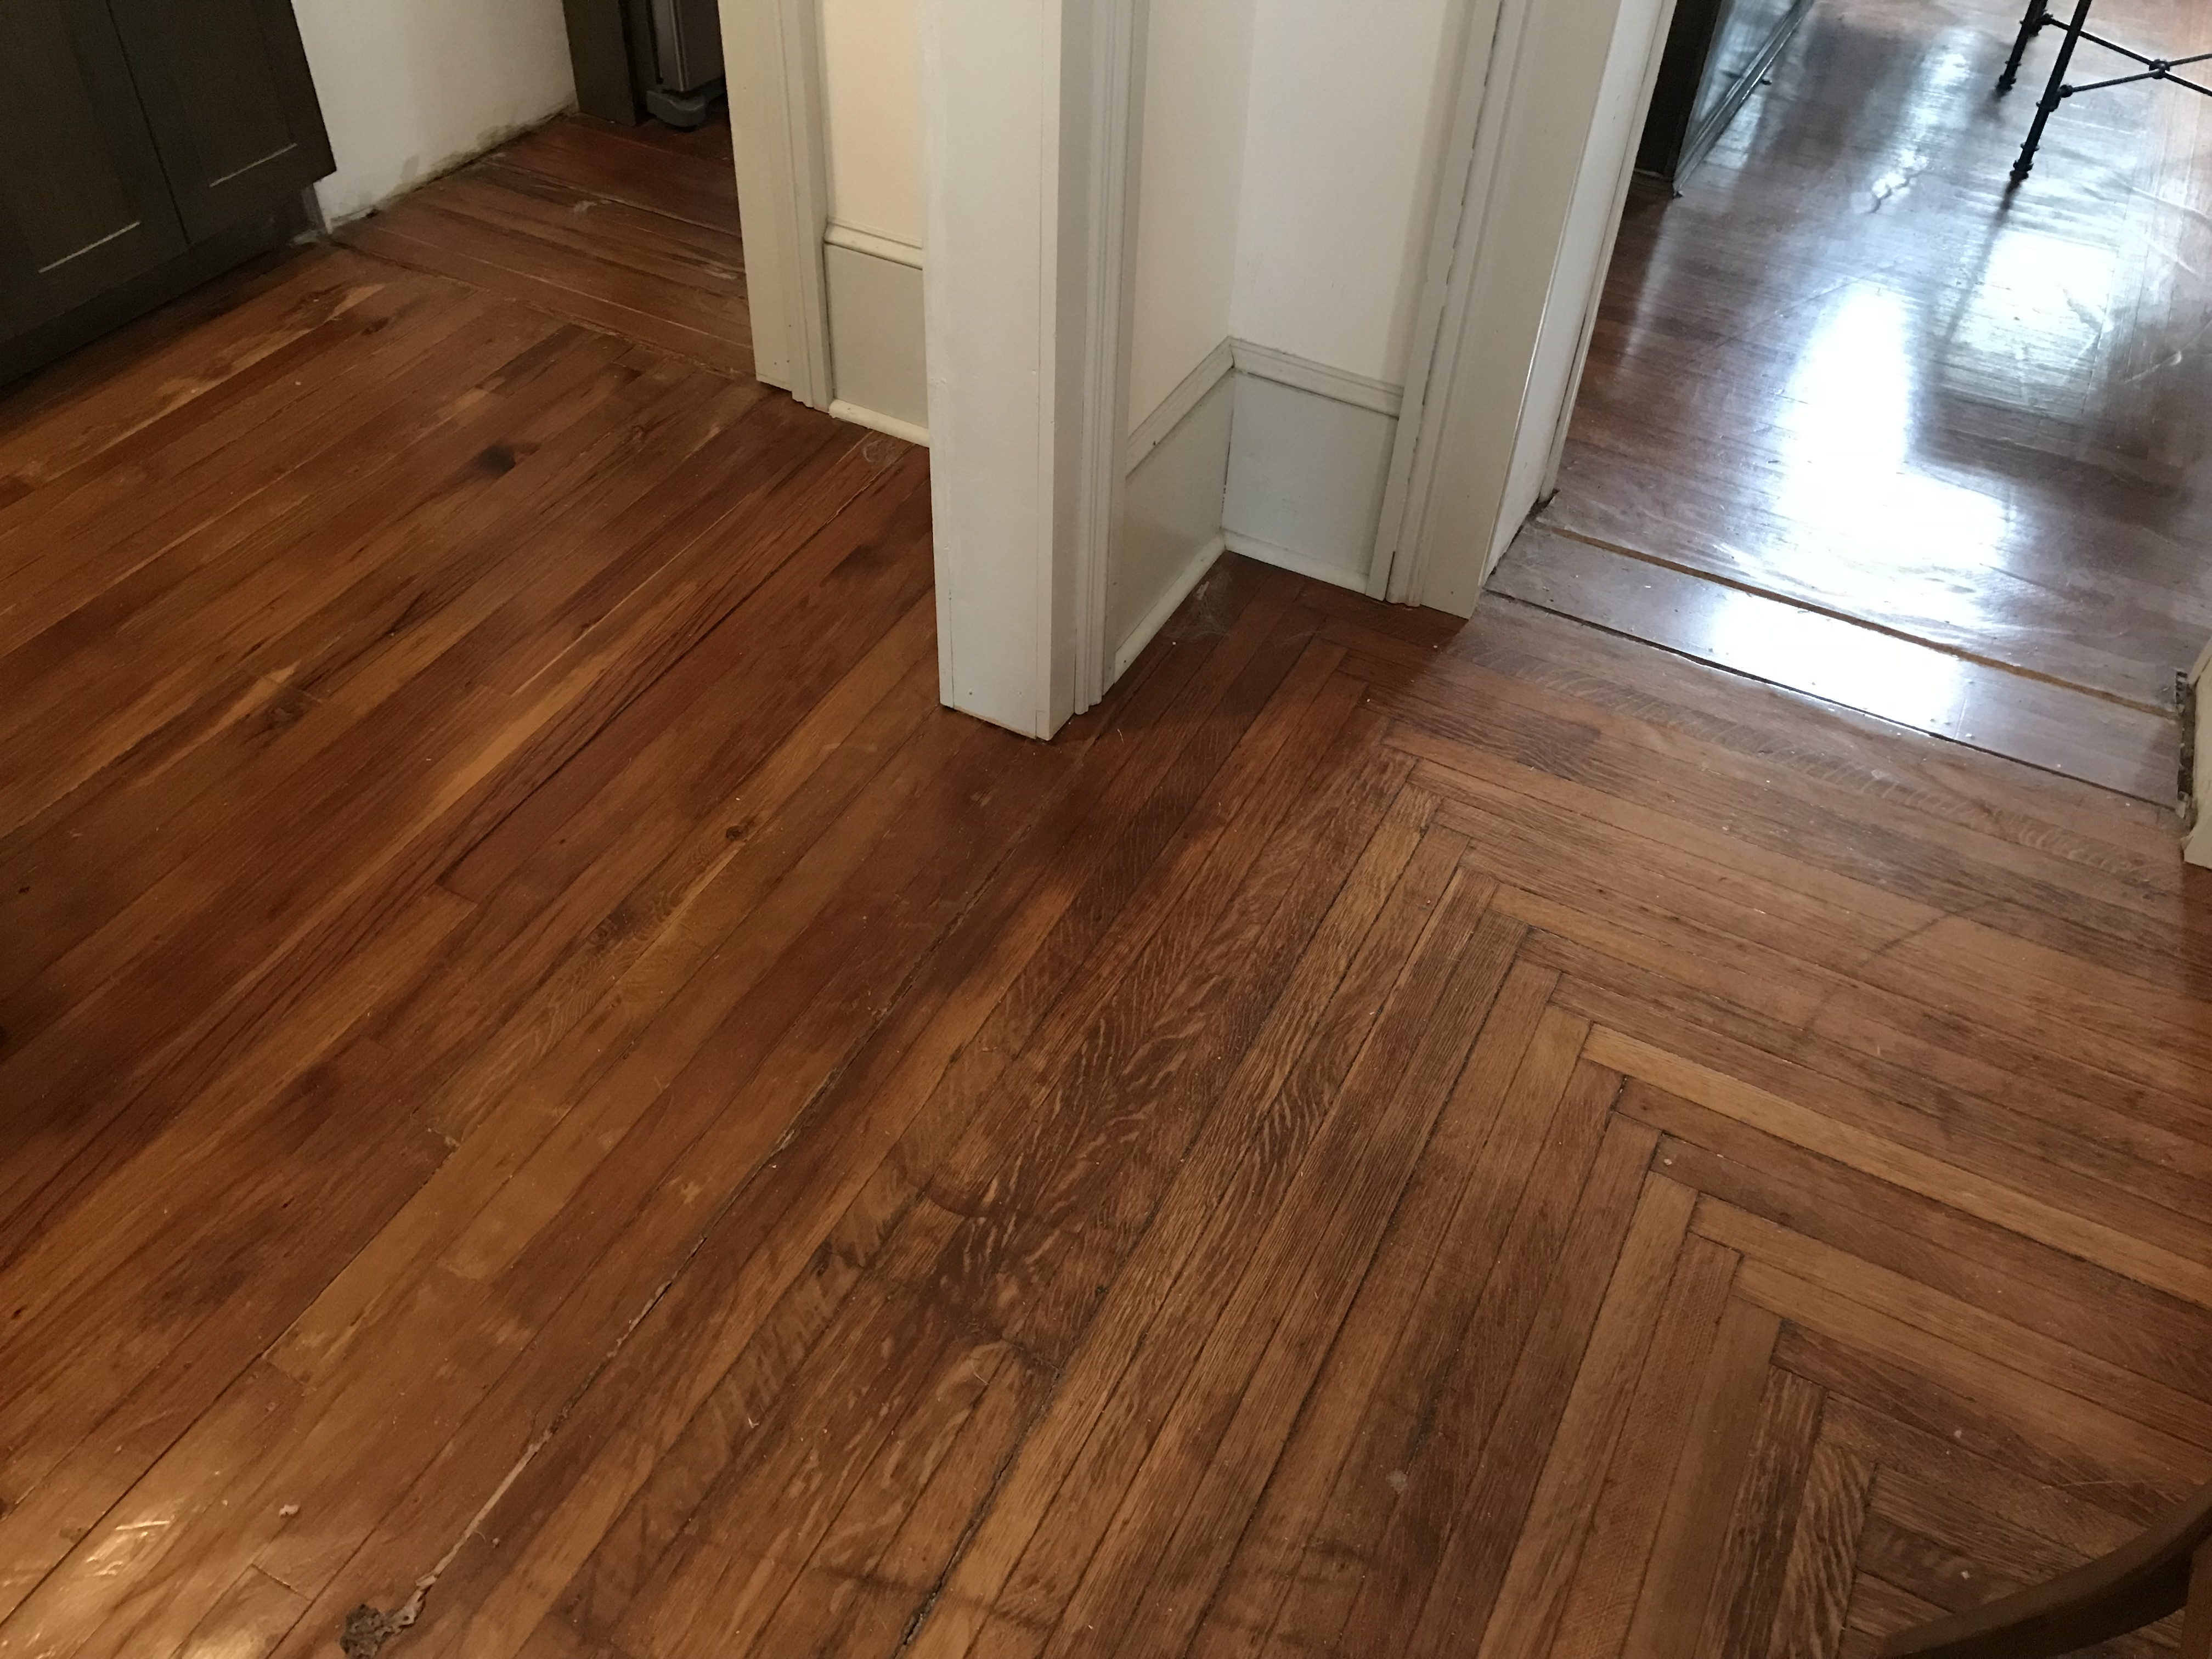 match-newfloor-to-old